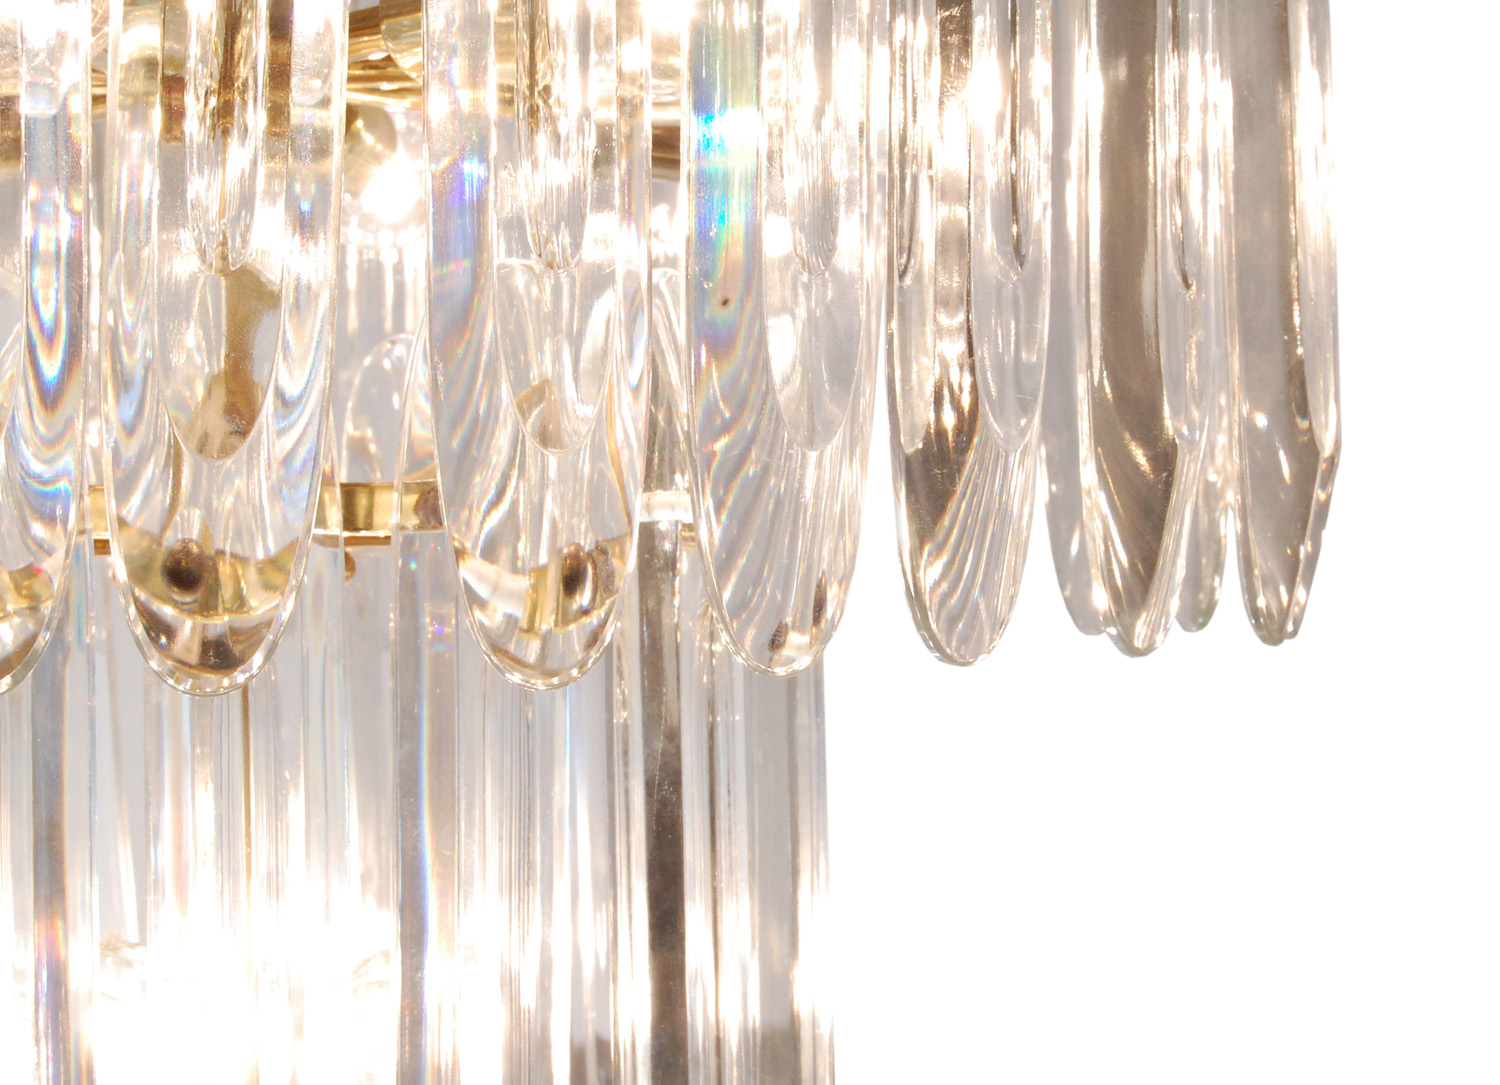 Sciolari 40 big clear crystals chandelier153 detail hires.jpg